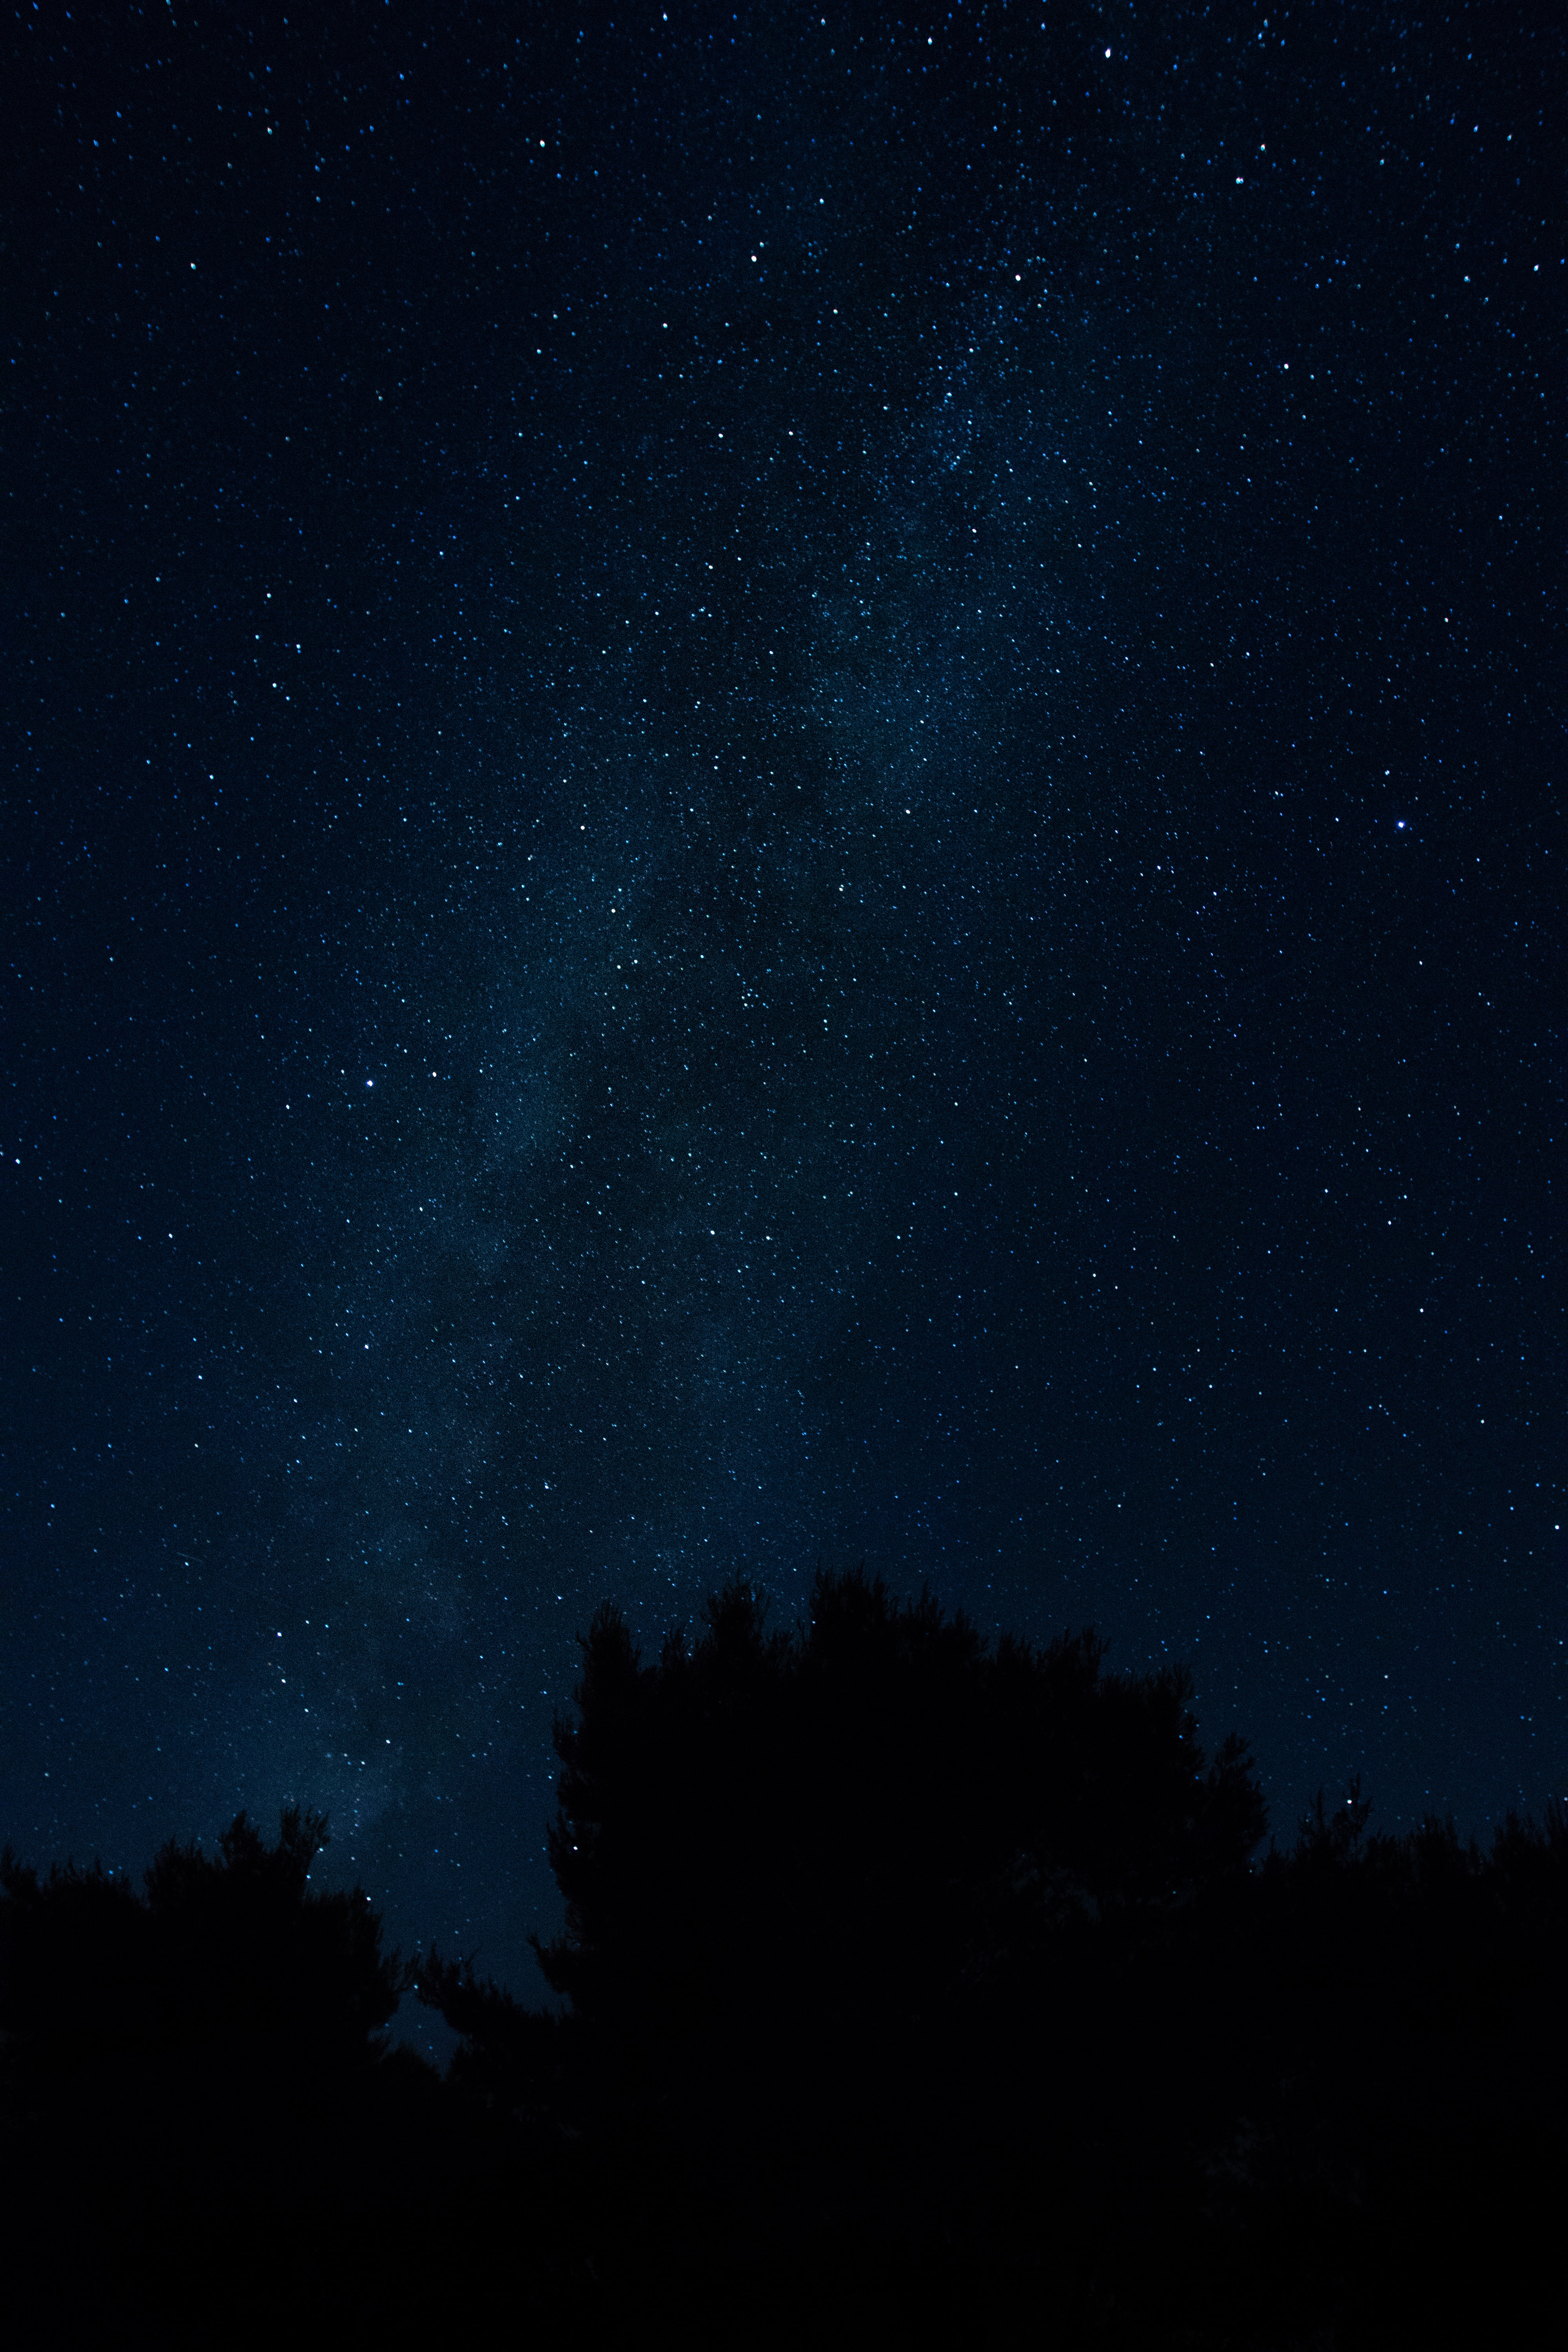 stars at the sky during night time